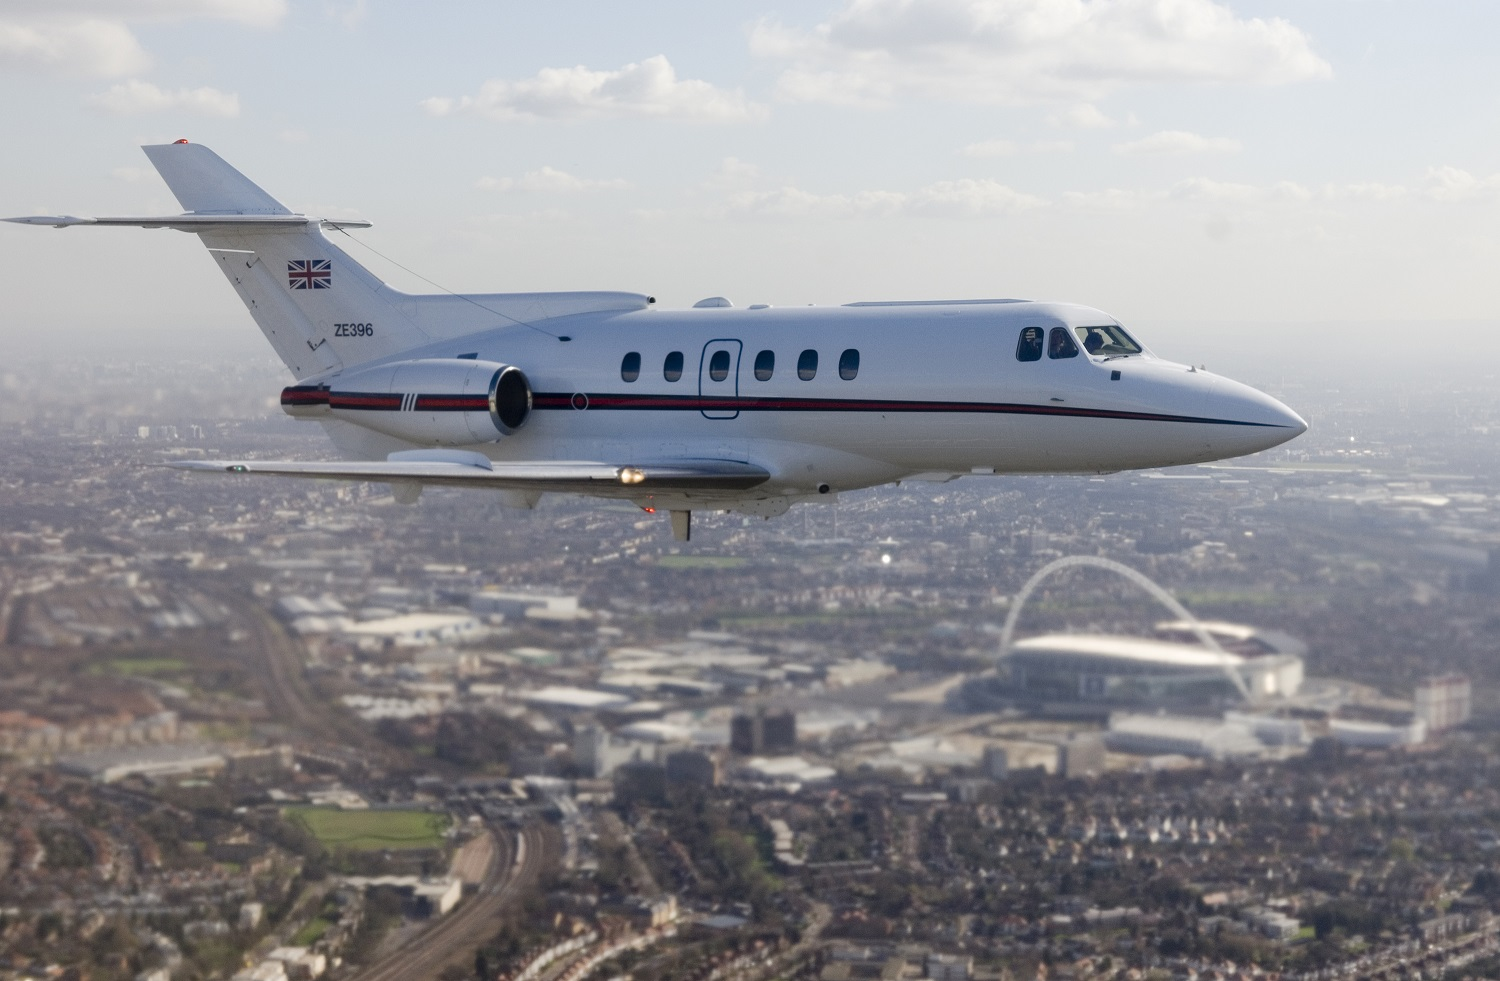 Ex. Royal Squadron Hawker 700 IN FLIGHT OVER LONDON.